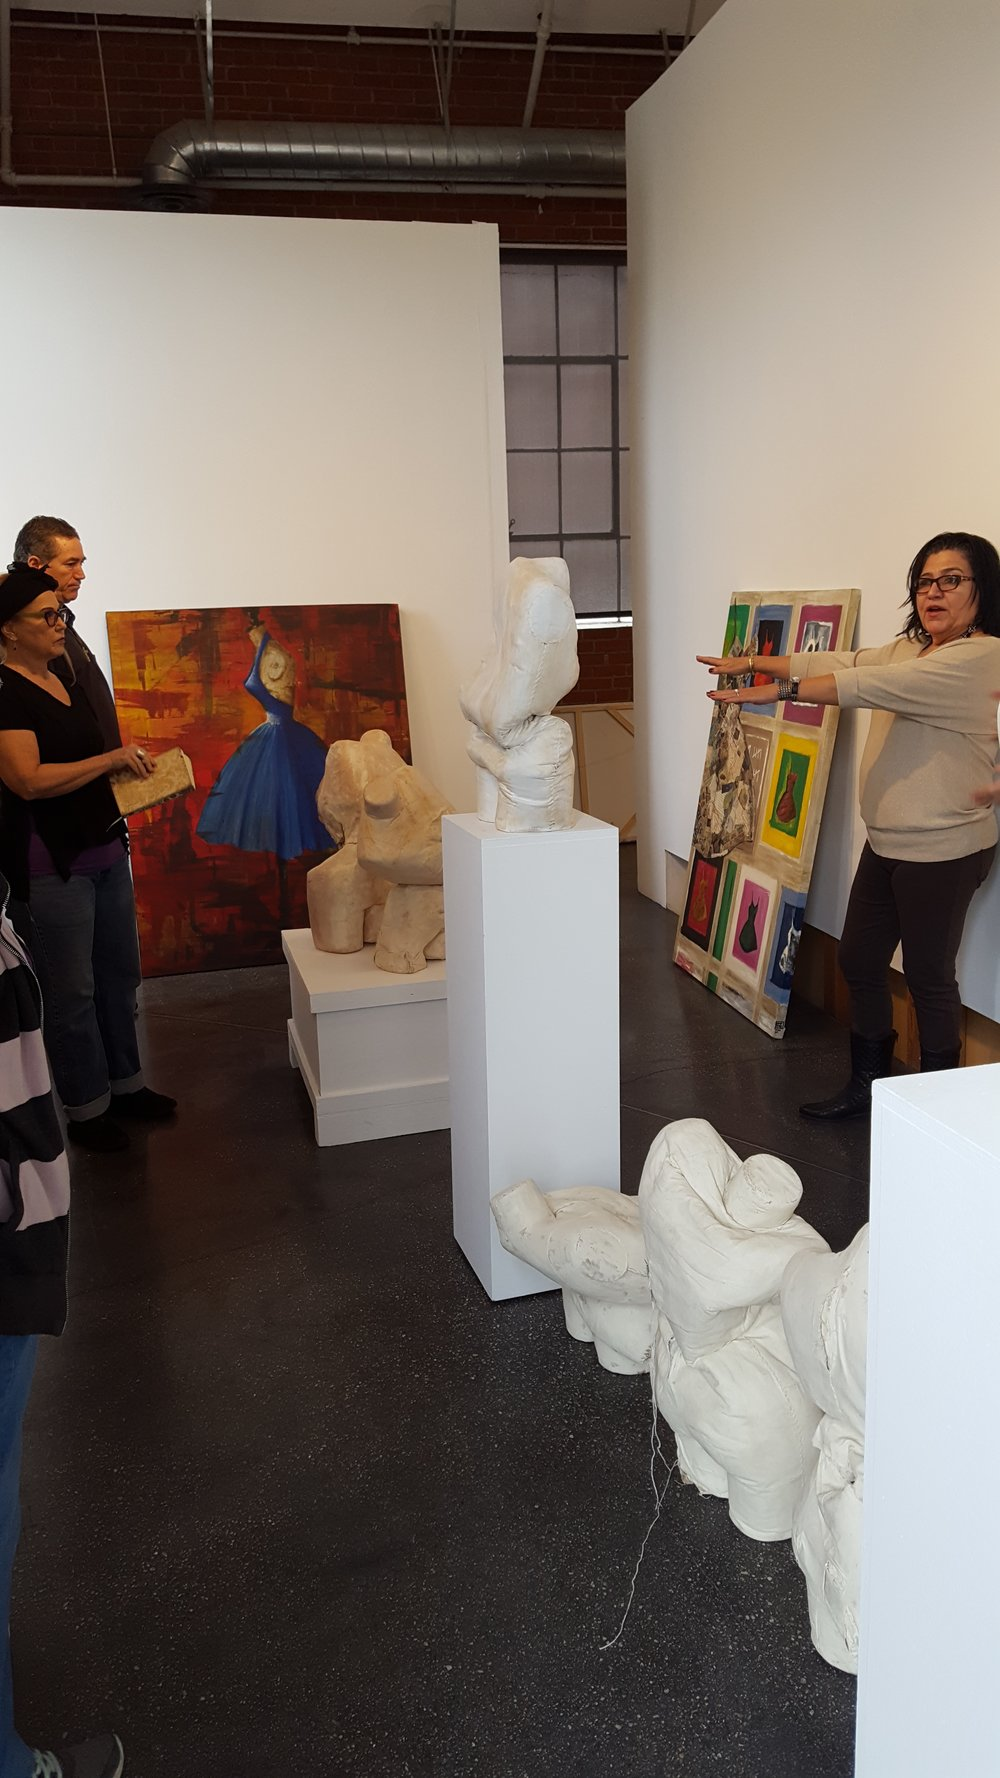 Curator Linda Vallejo (right) giving critique and instructing us where to put what. Artwork by Dawn Marie Forsyth (left with book). | Photo credit: C. Rasmussen.